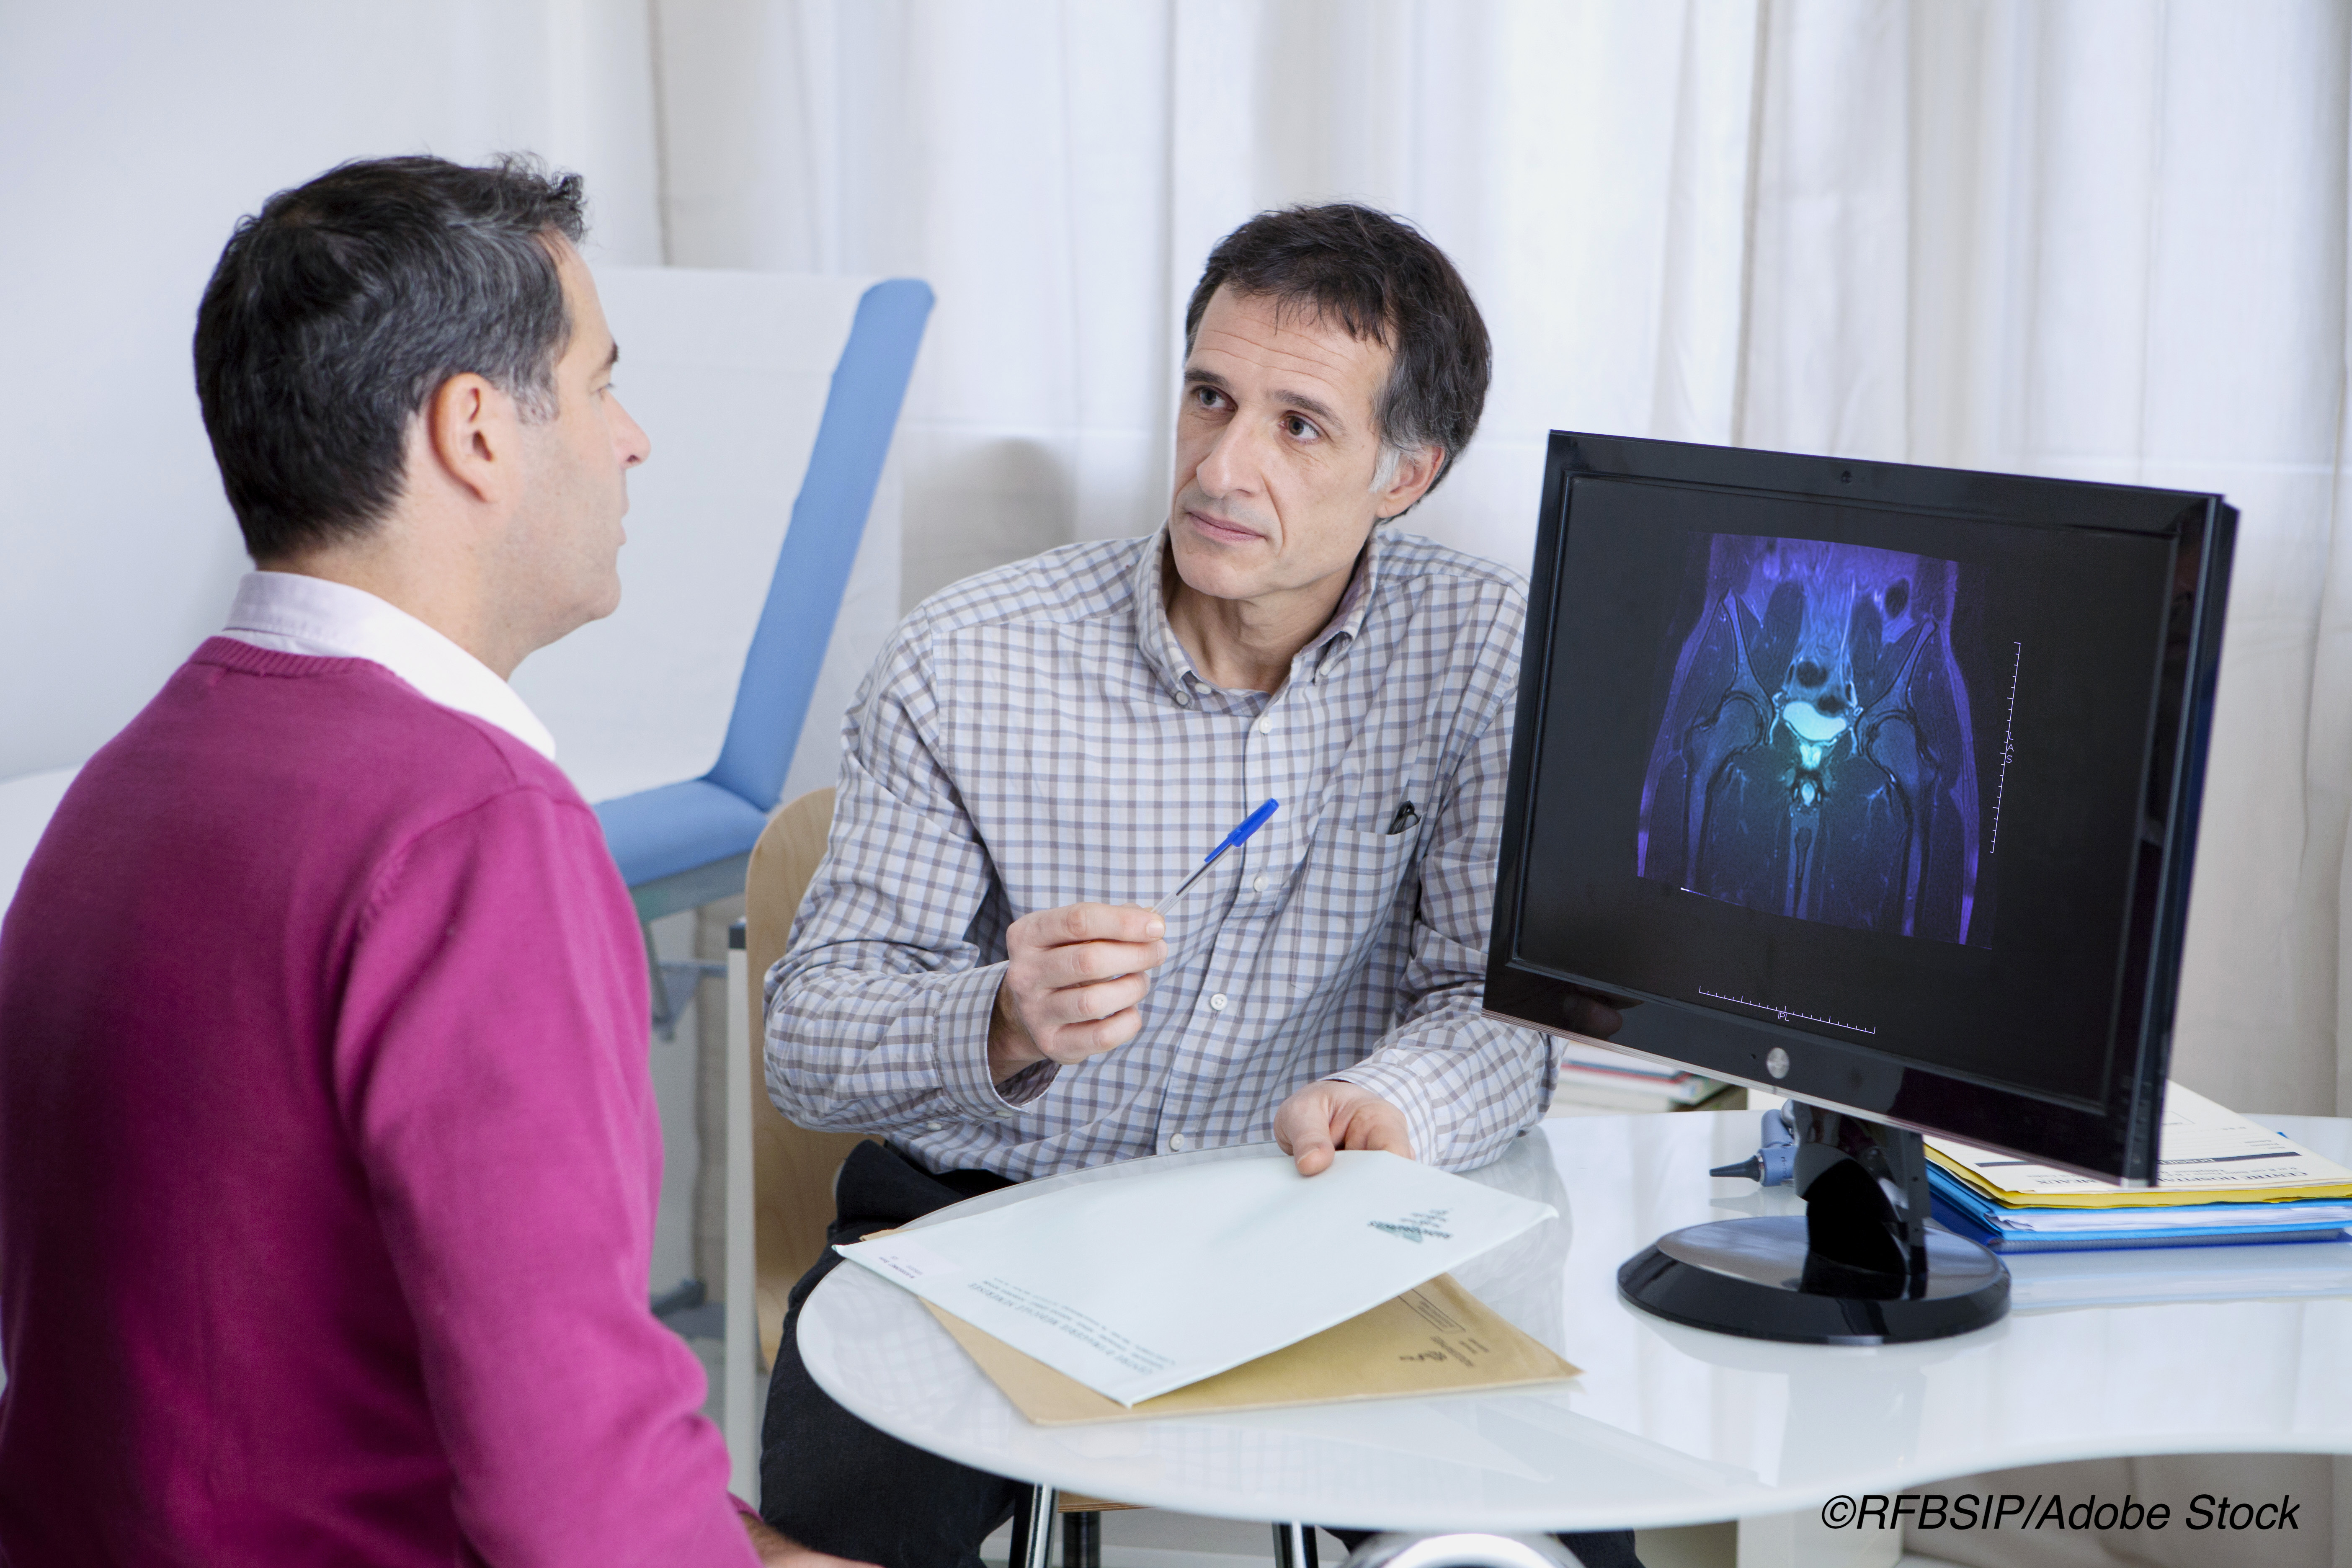 Study Touts Benefit of MRI for Prostate Cancer Screening